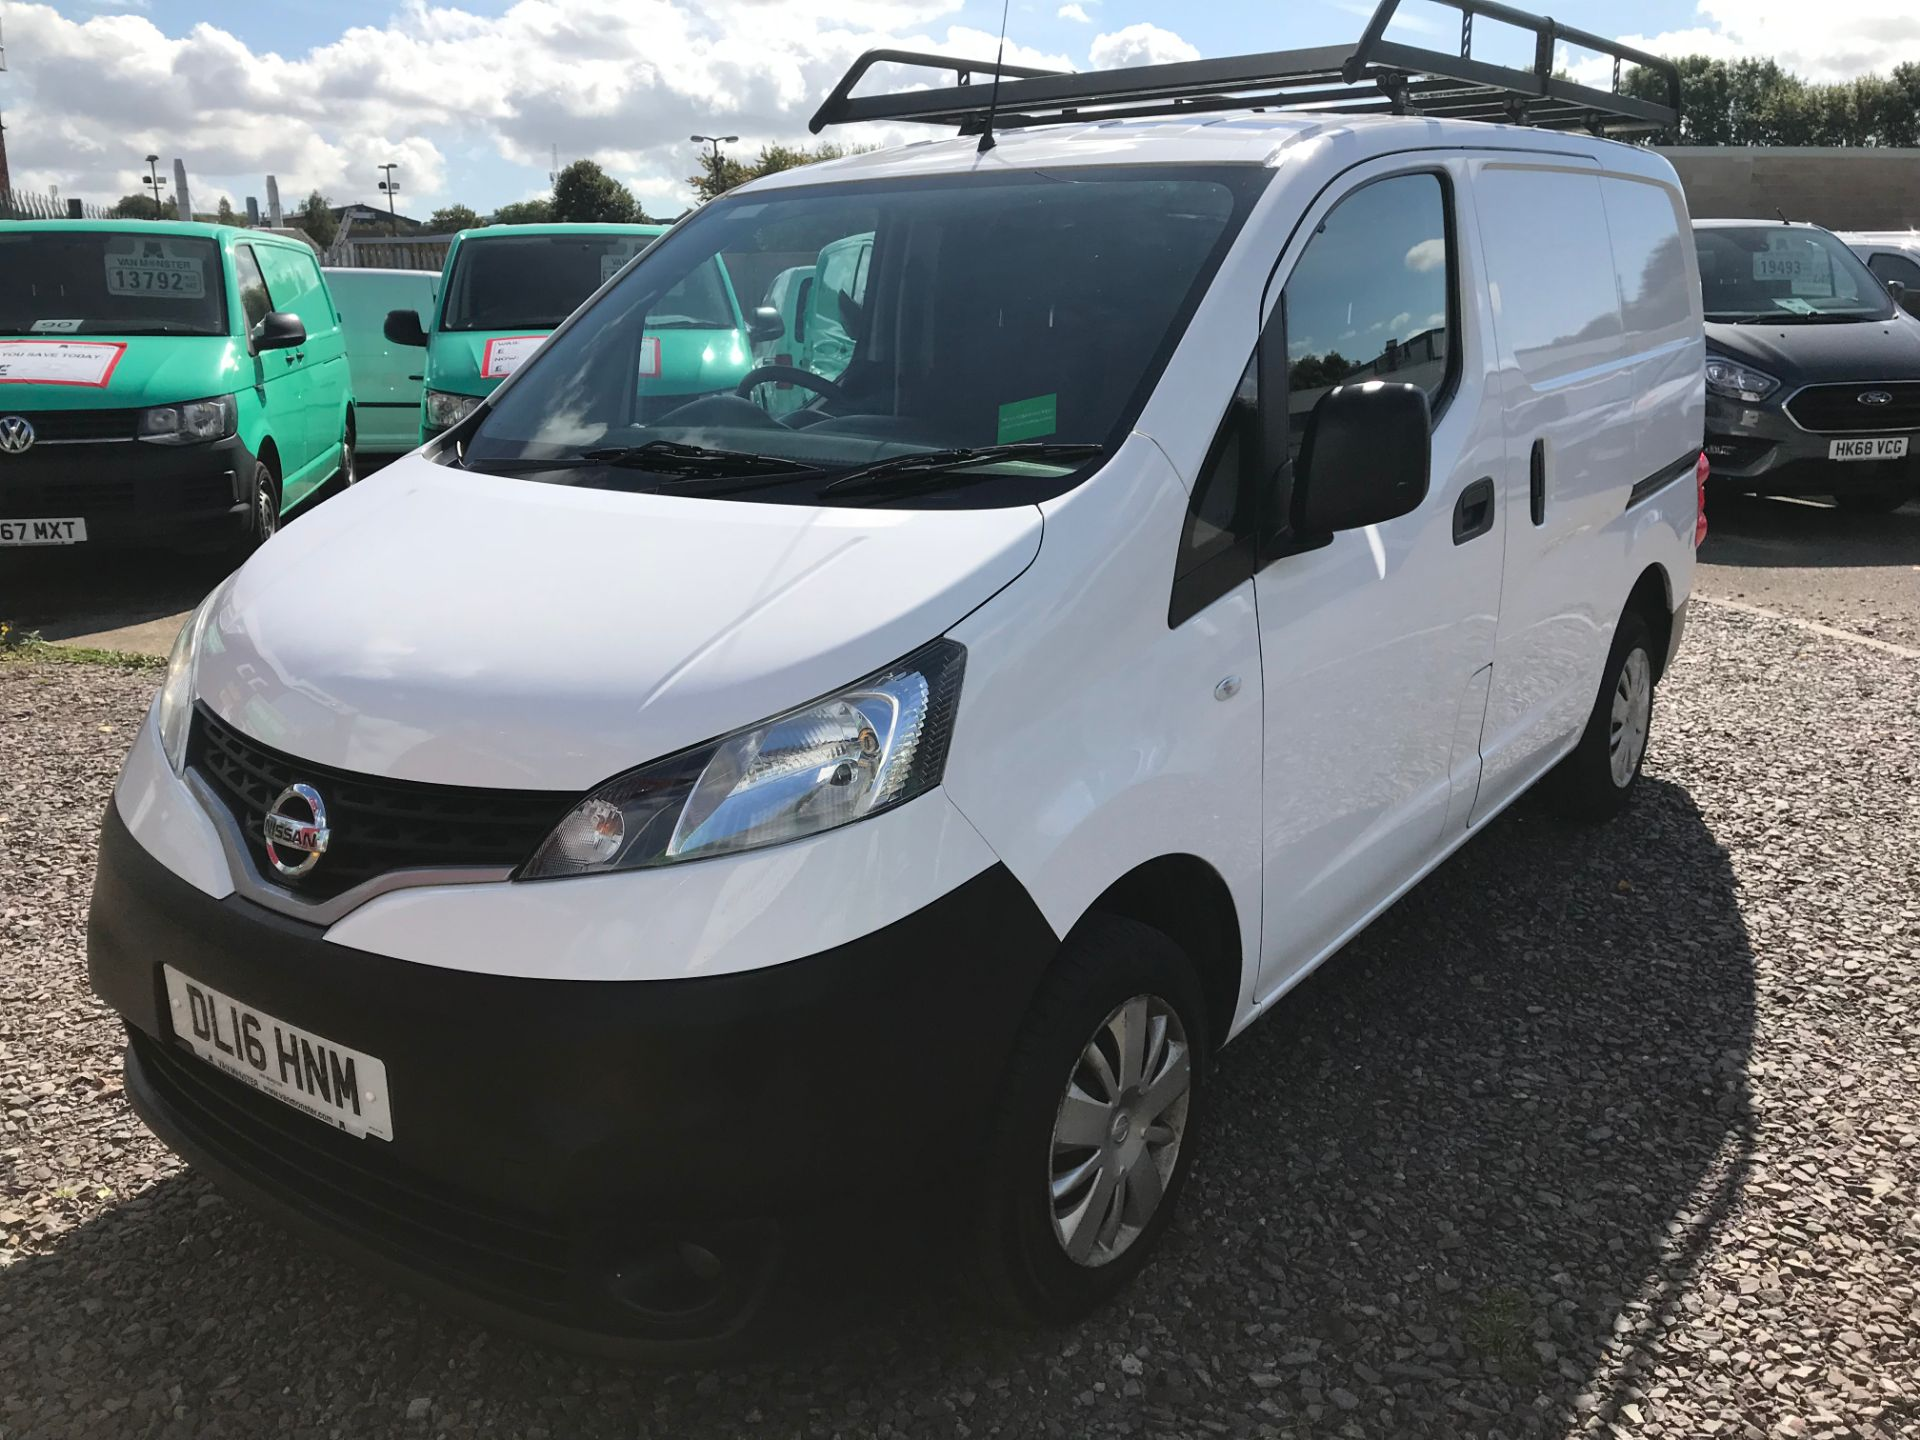 2016 Nissan Nv200 1.5 DCI ACCENTA EURO 5 (DL16HNM) Image 7